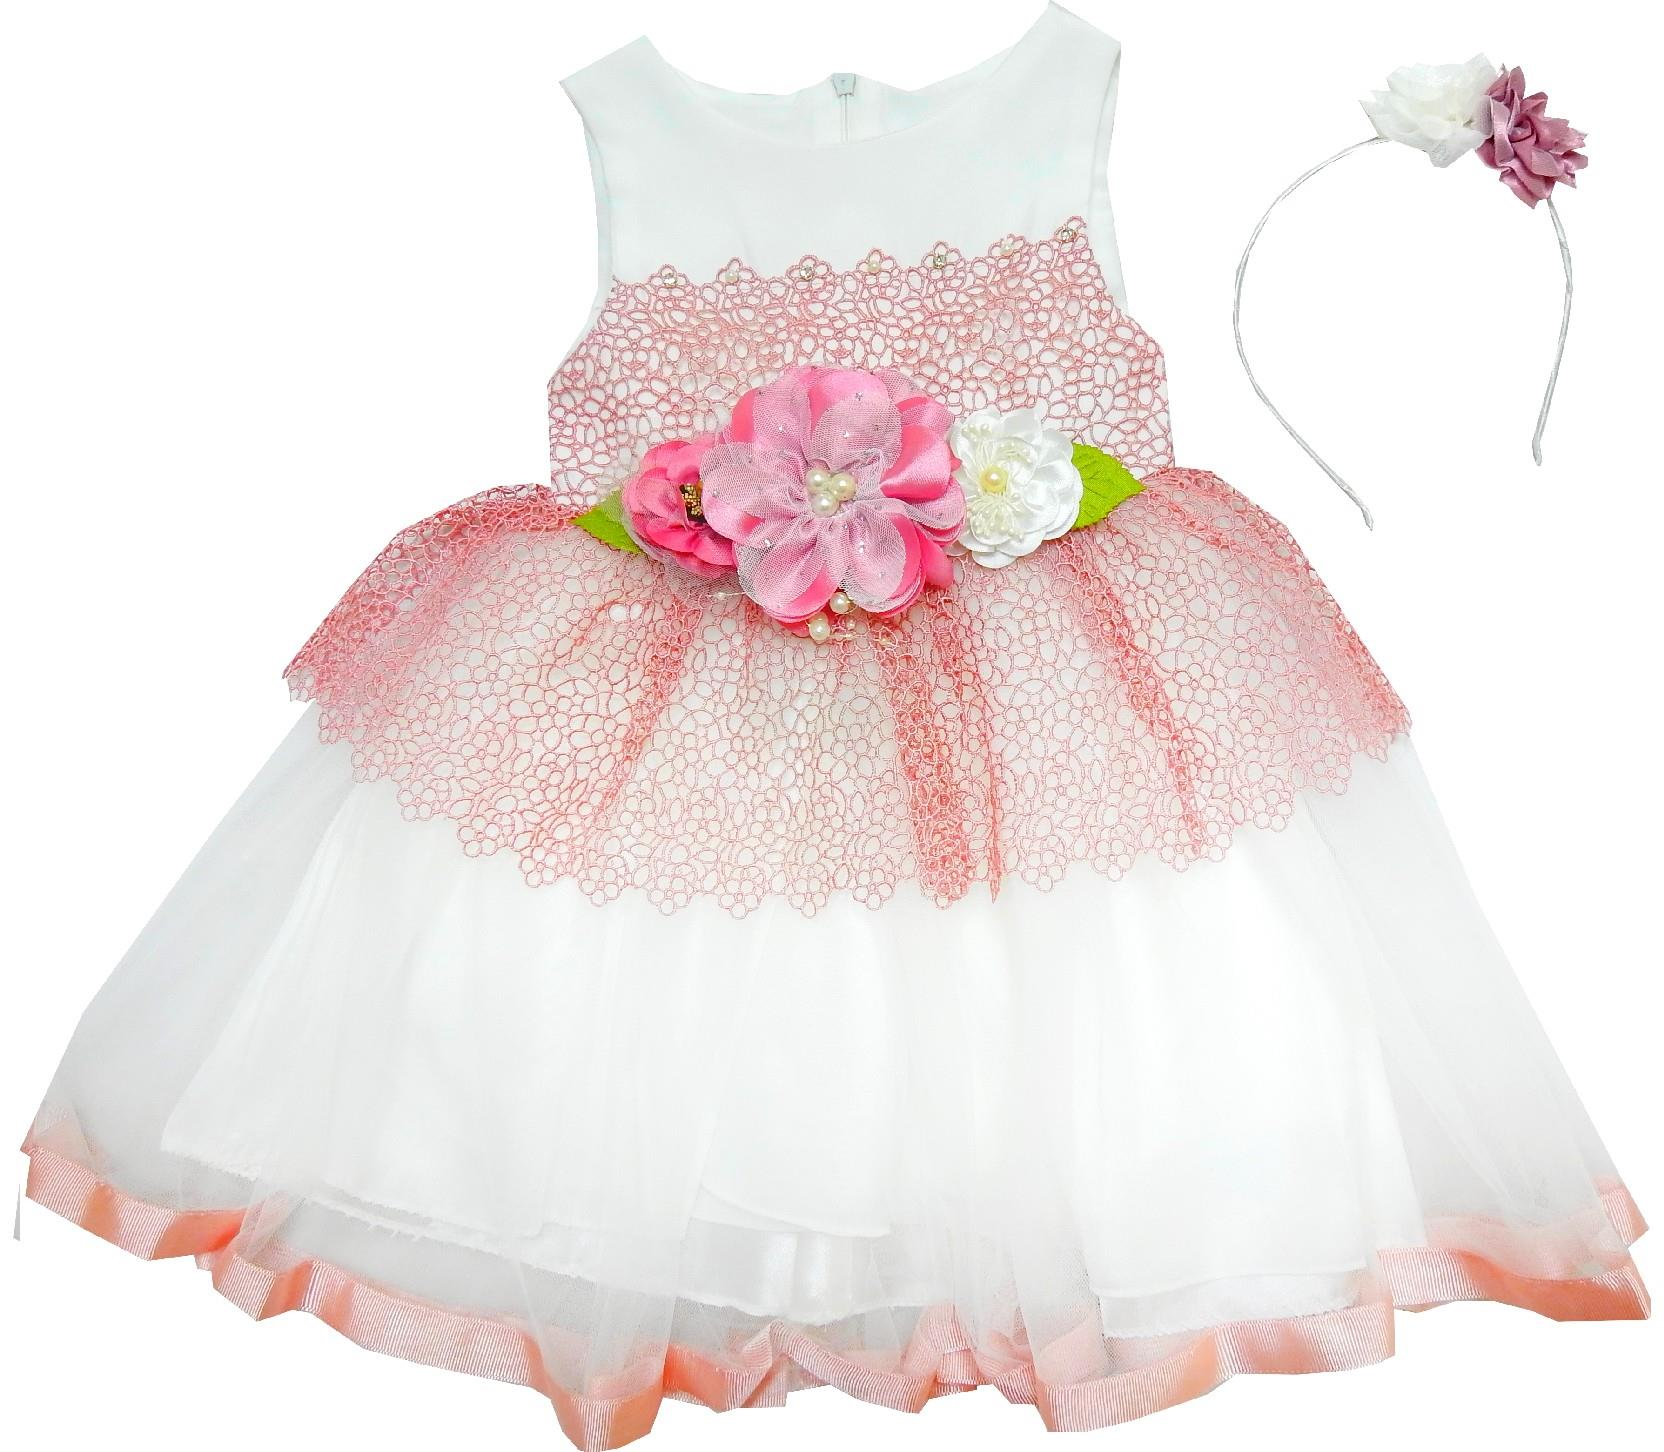 240 wholesale flower applique tulle design dress for girl (3-4-5-6 age)